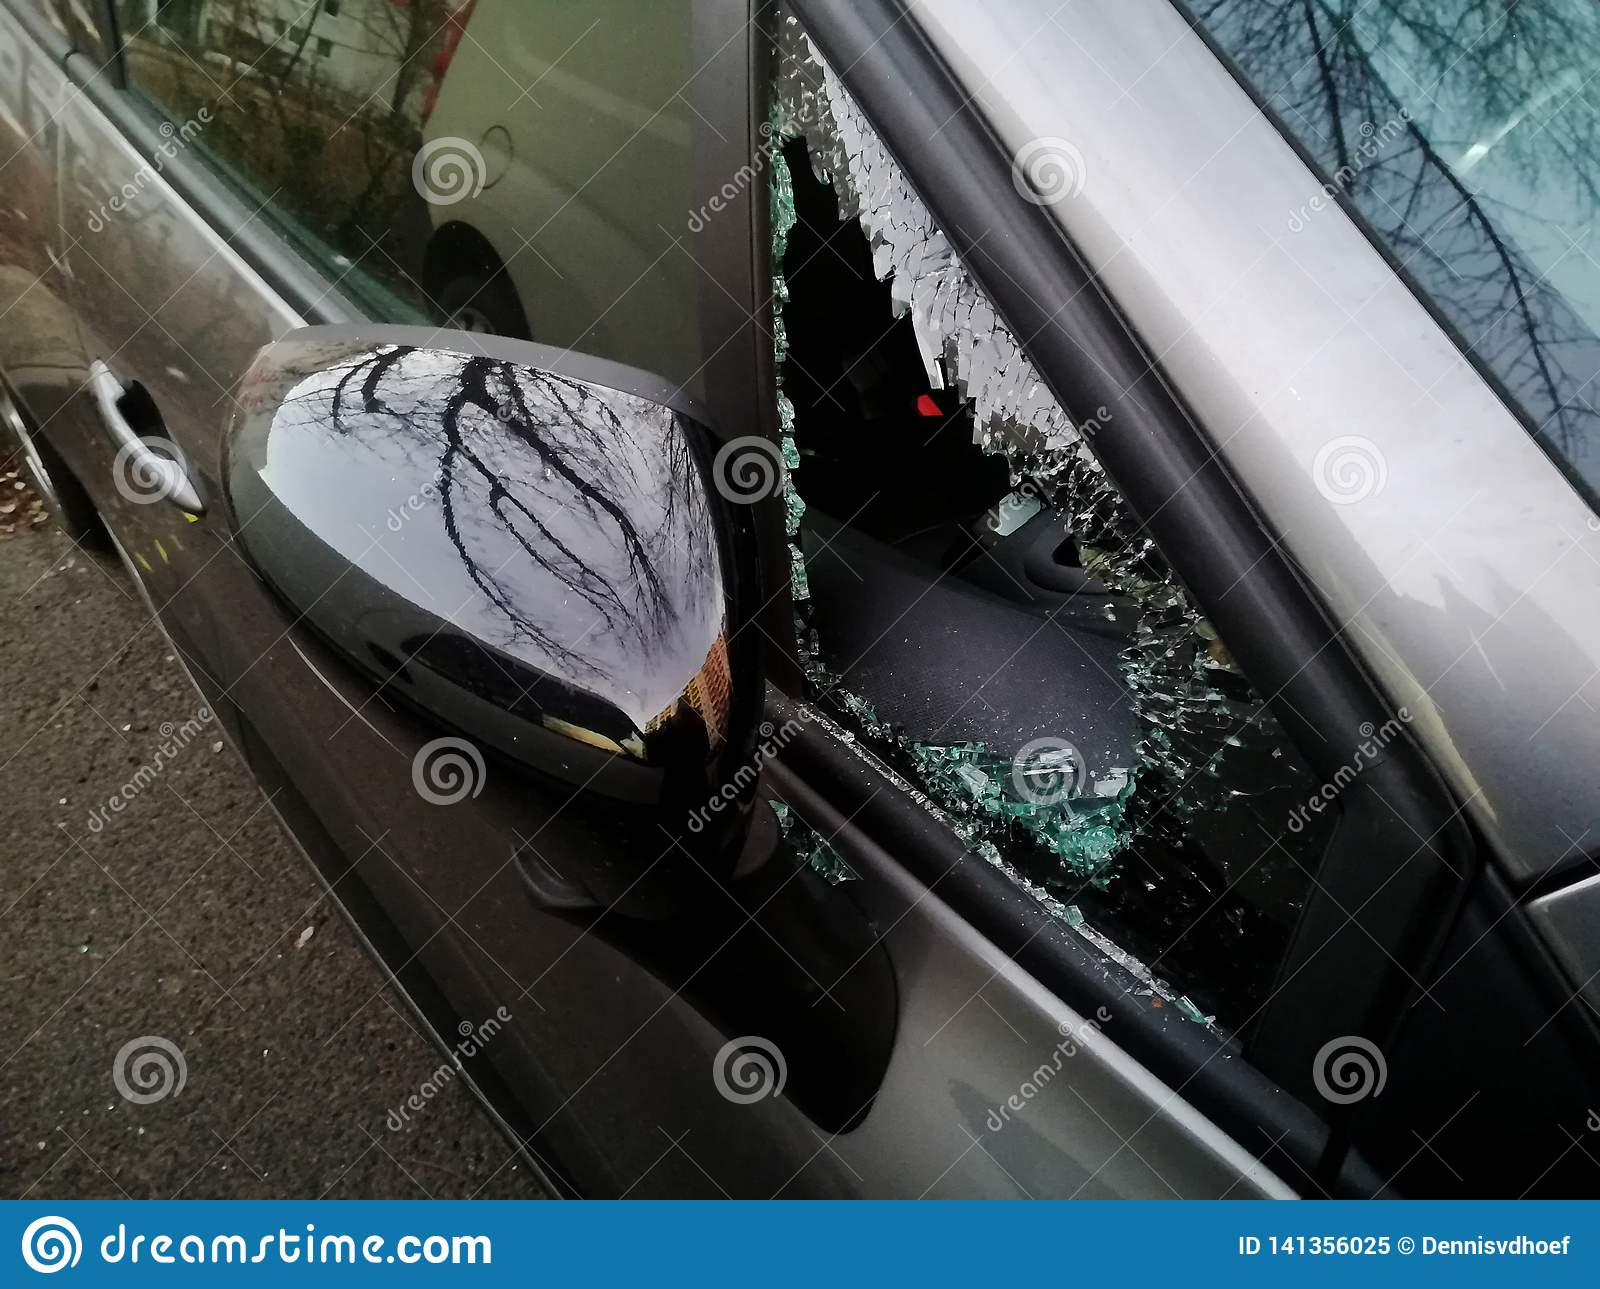 A broken car triangular window.